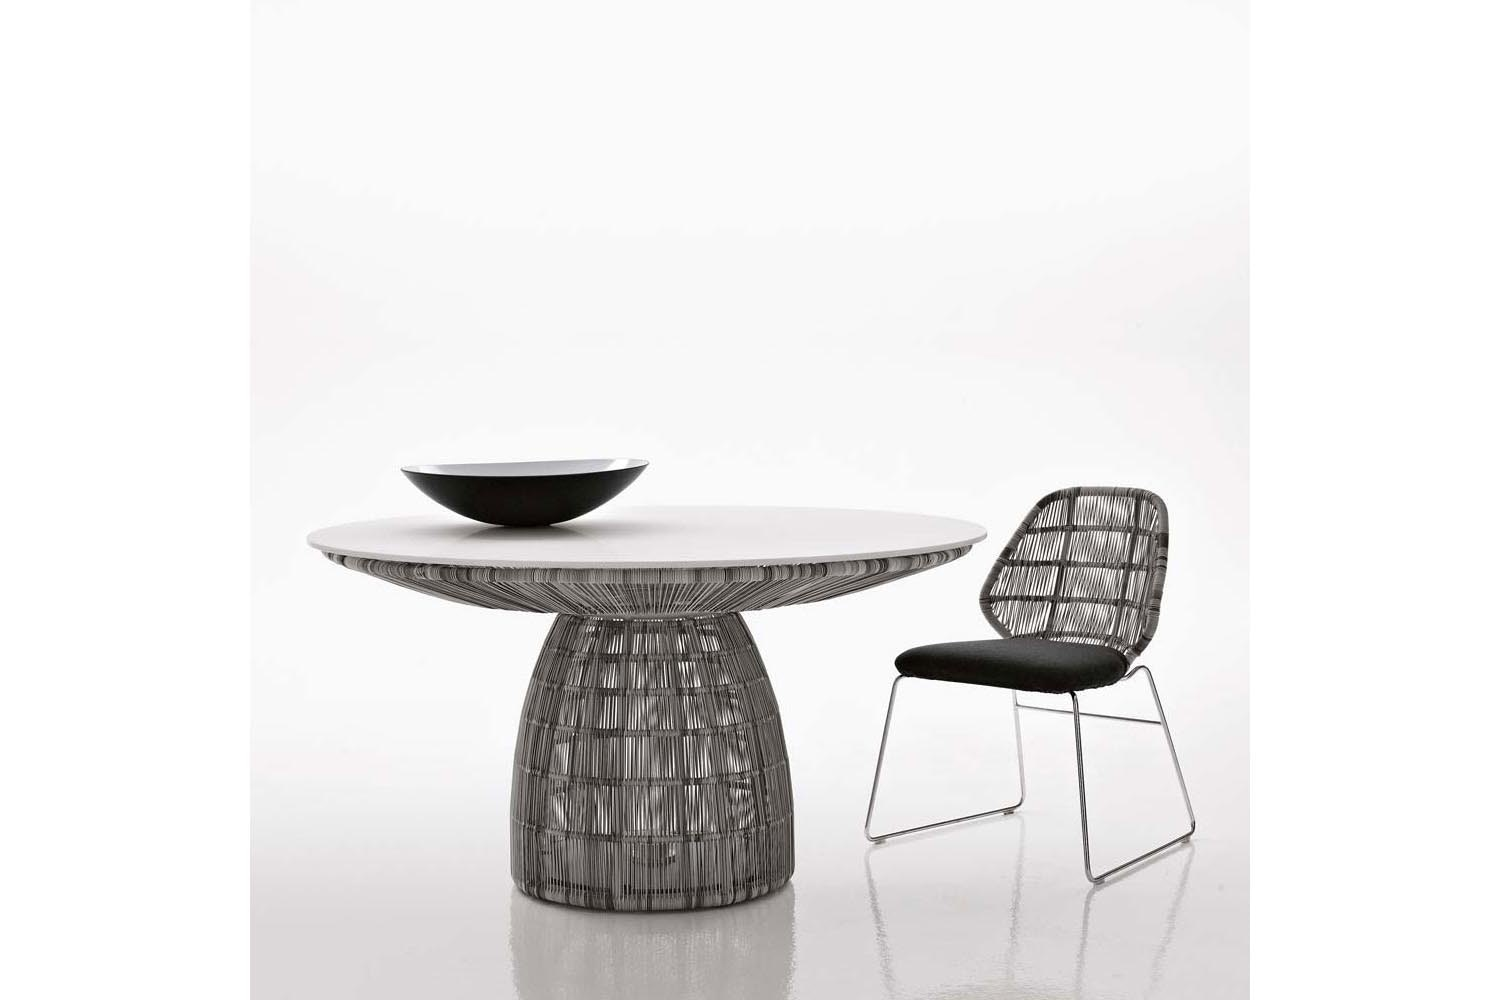 Crinoline Table by Patricia Urquiola for B&B Italia